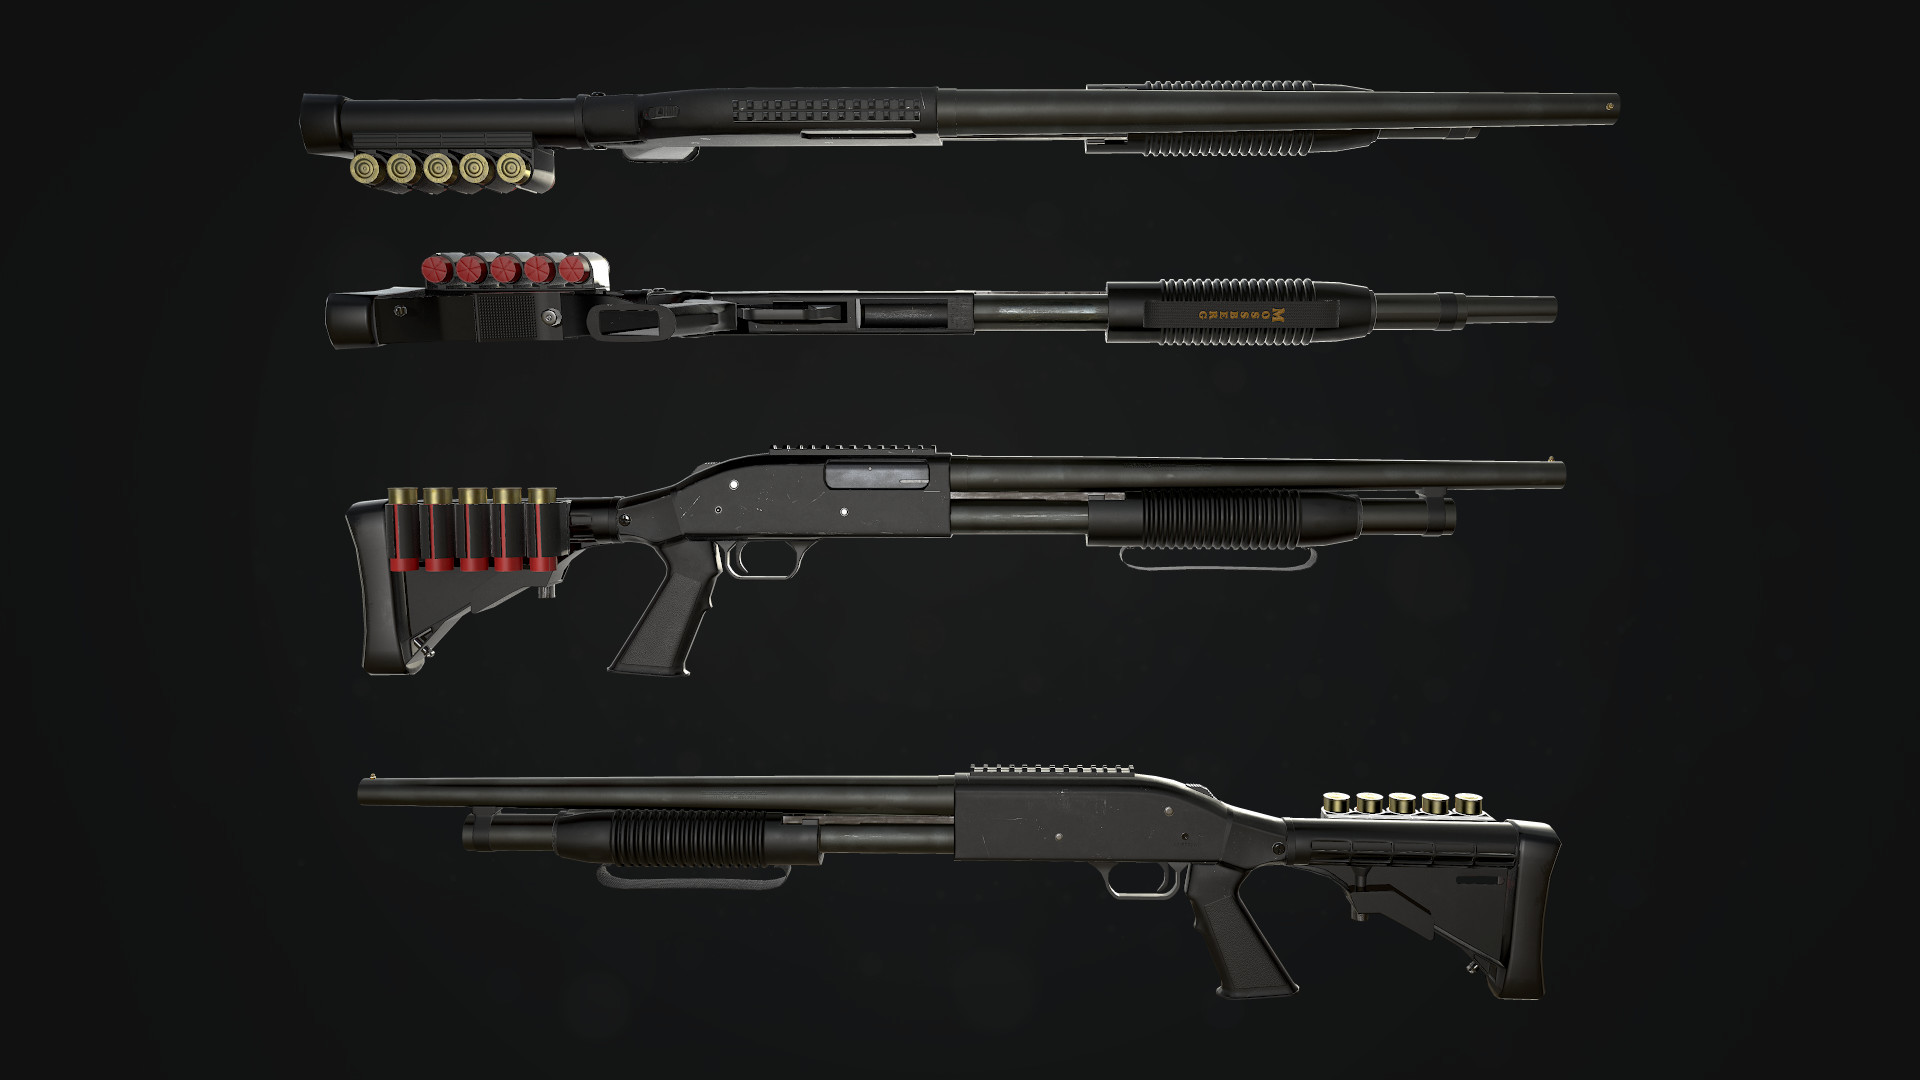 Beauty shots of shotgun, rendered in Marmoset Toolbag 3